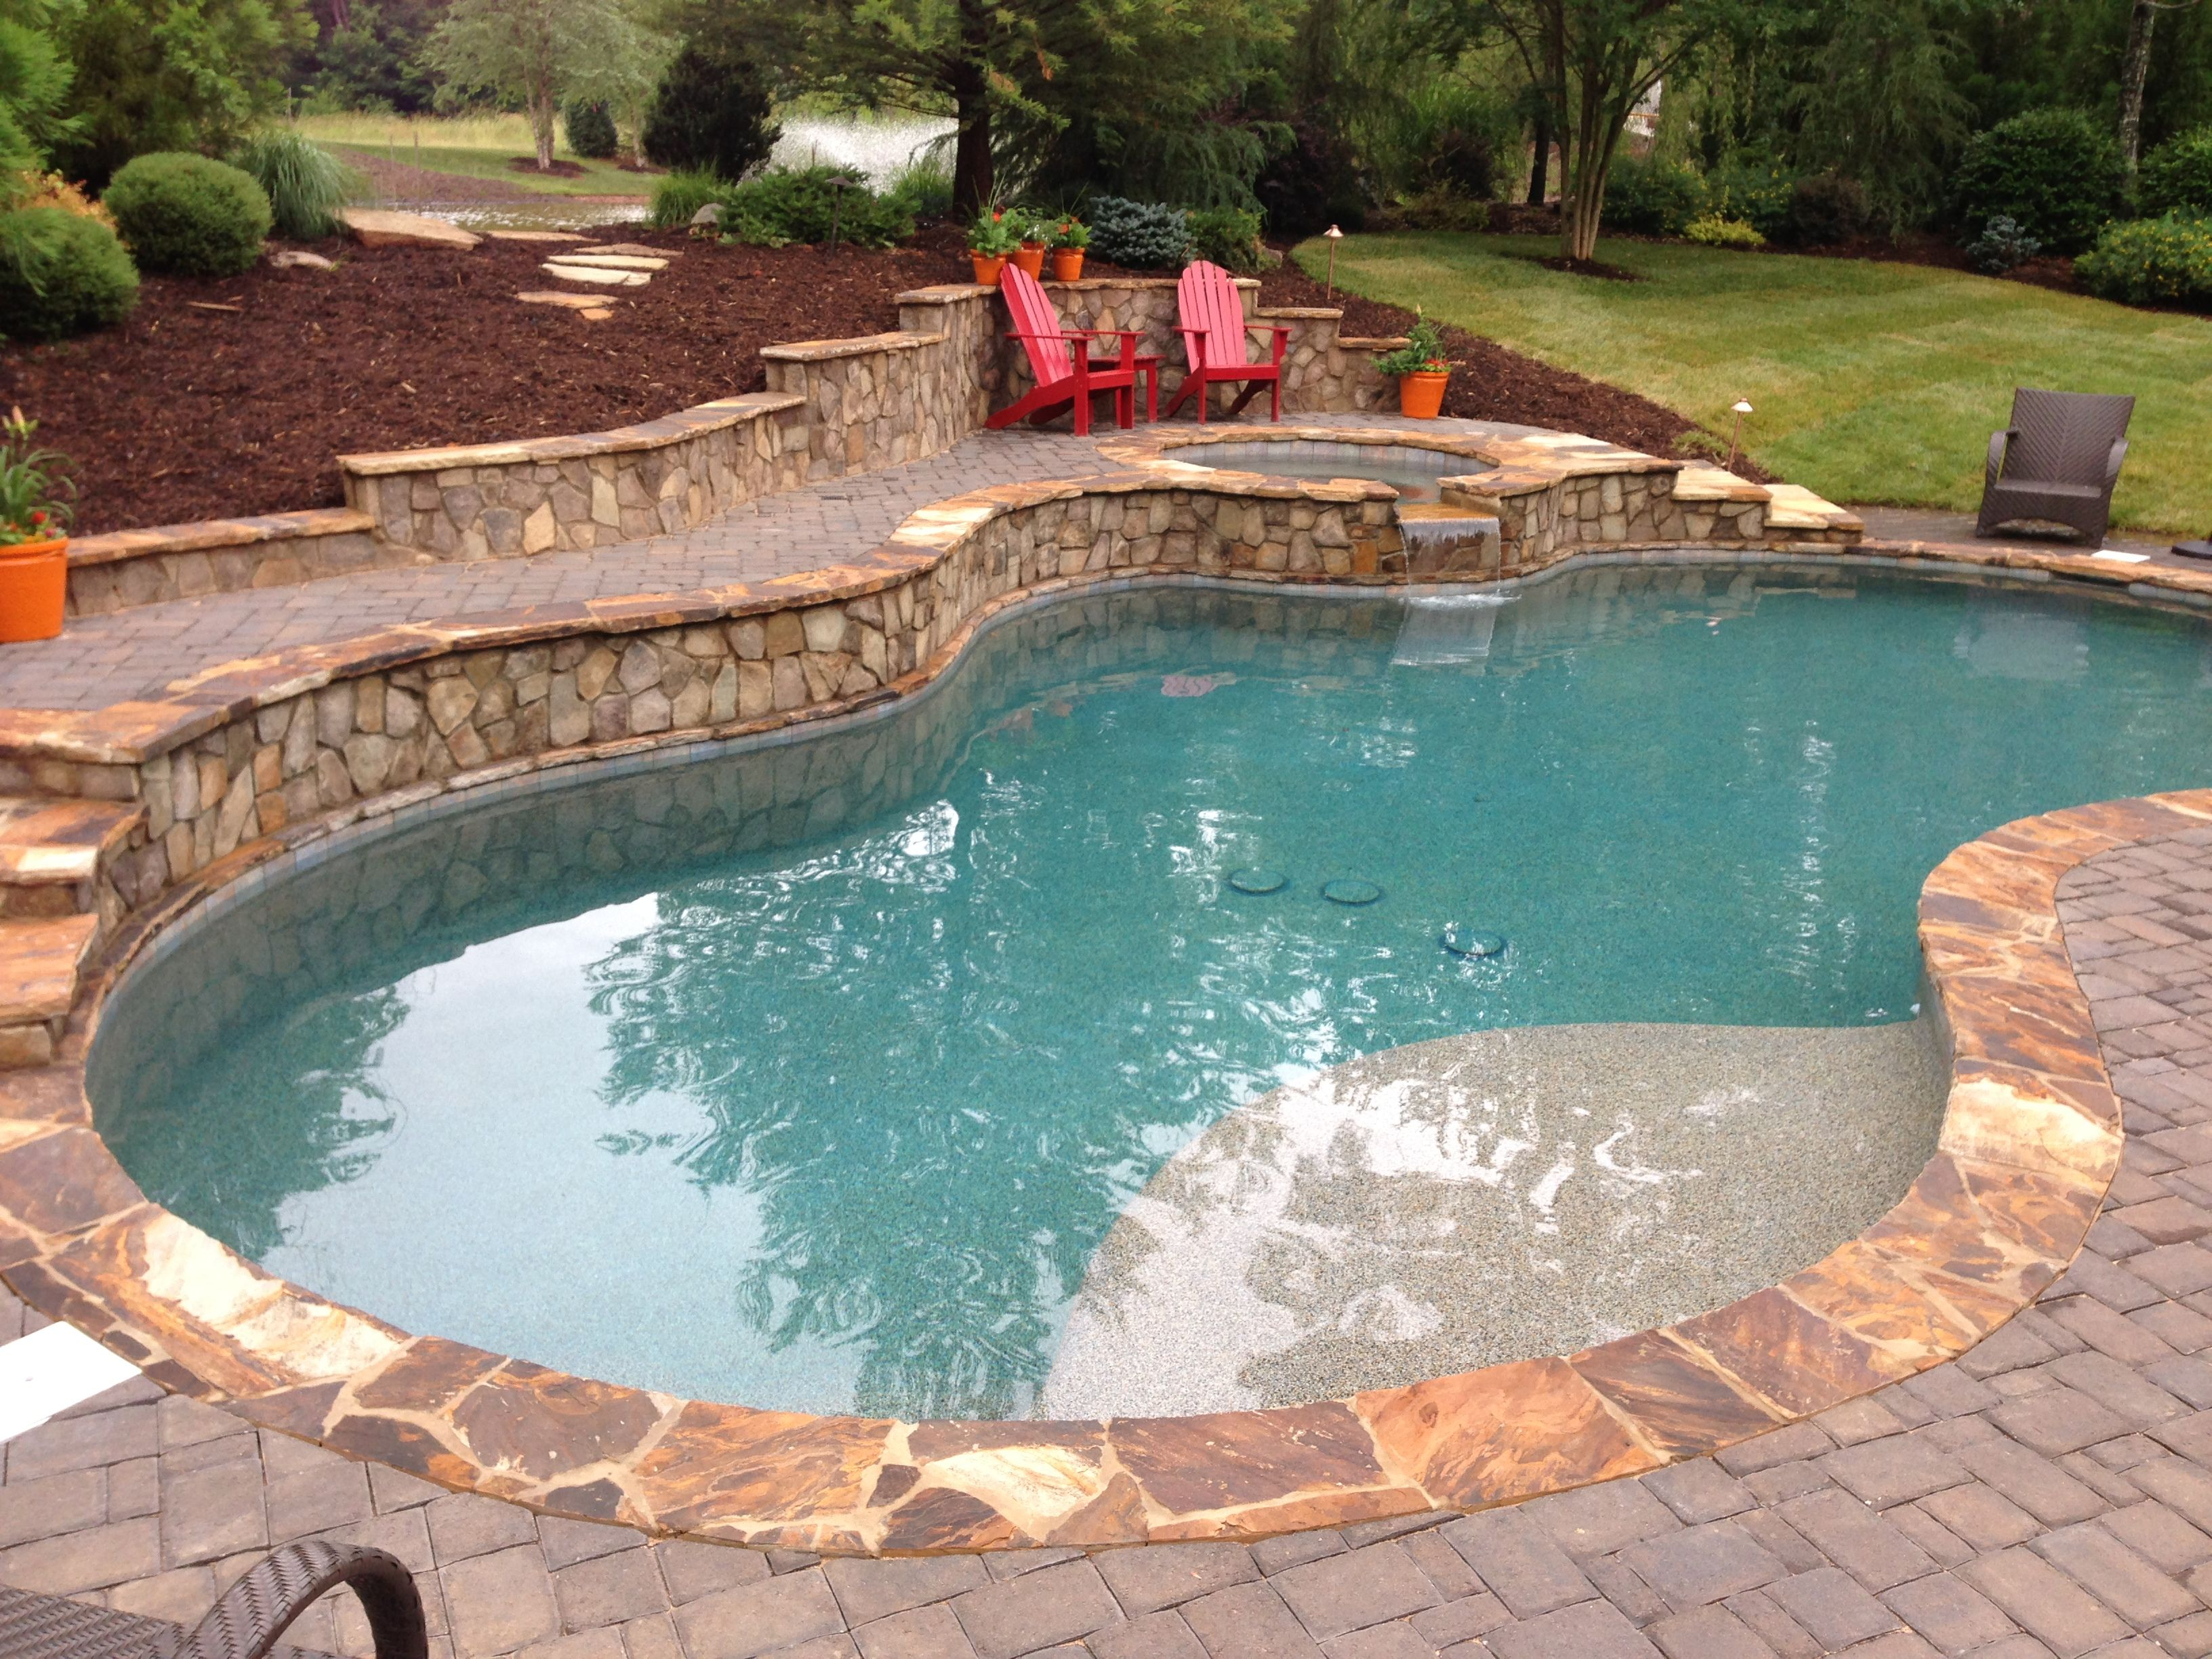 Challenging Yard Due To Elevation Makes For A Beautiful Swimming Pool And Spa Artisan Pools And Spas Building A Pool Pool Pool Houses